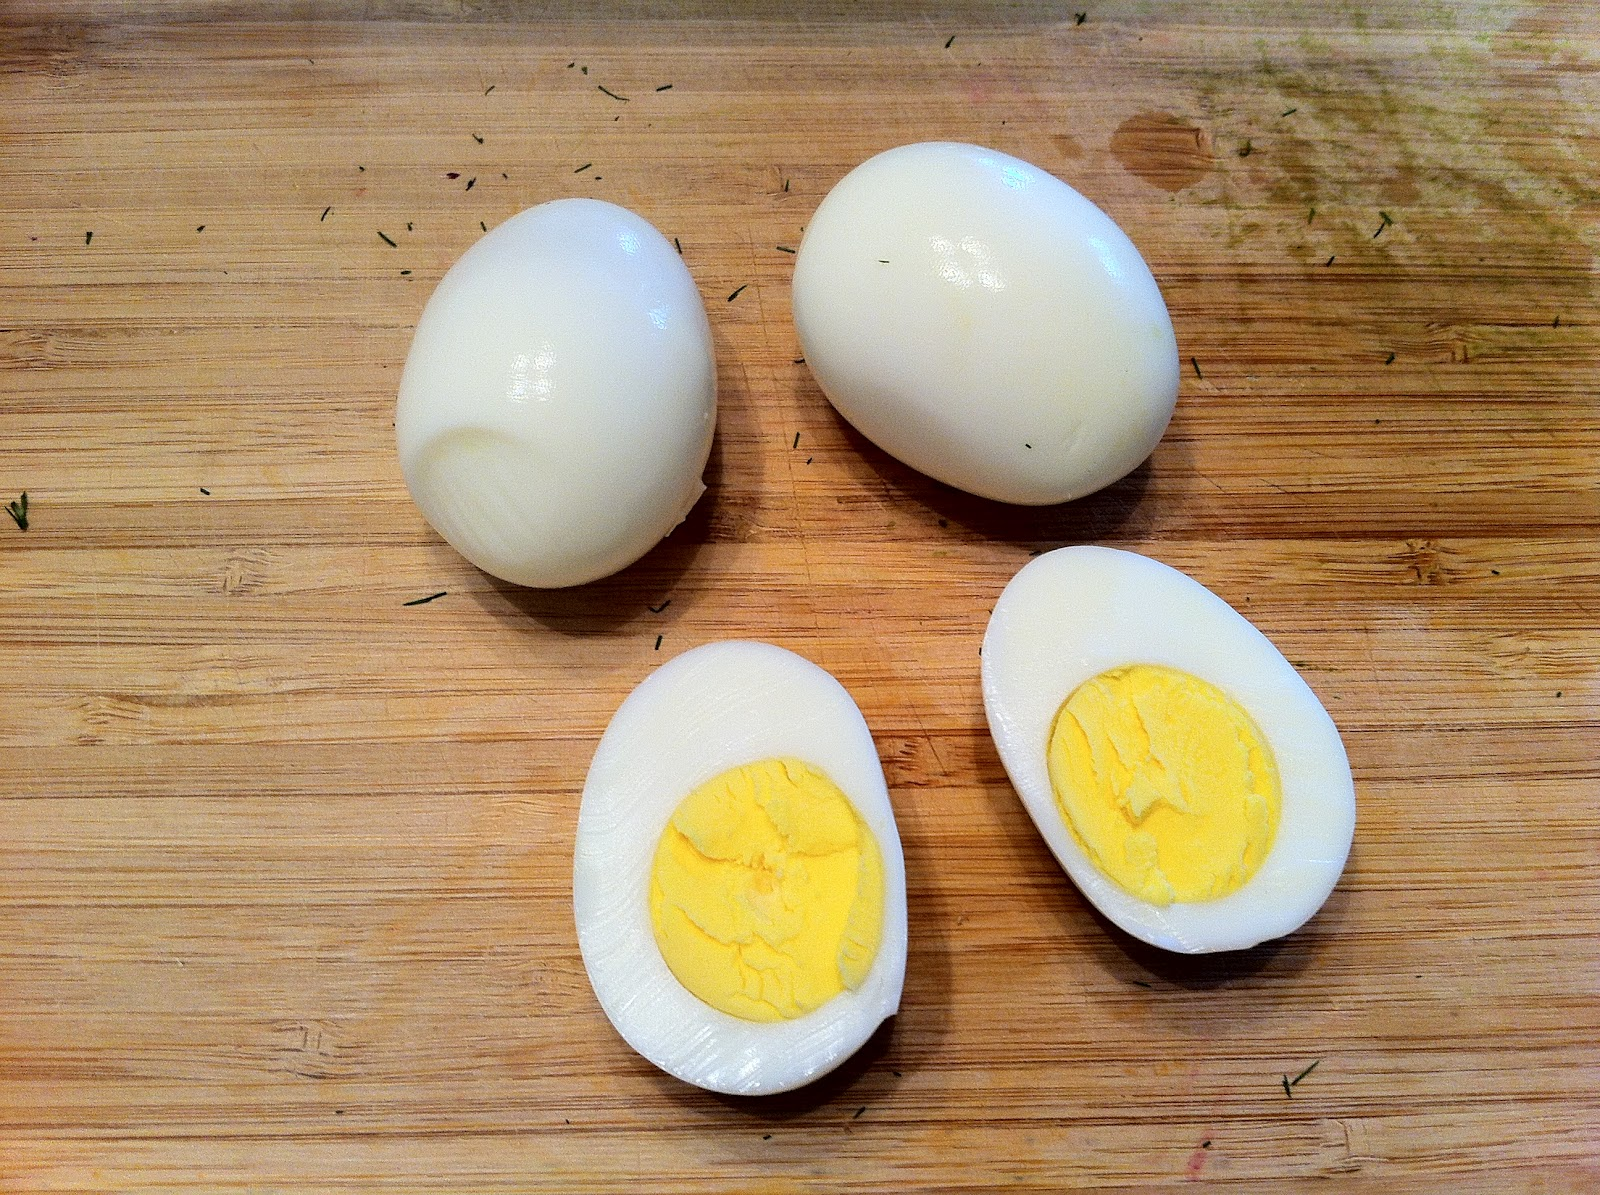 Halved Hard Boiled Egg